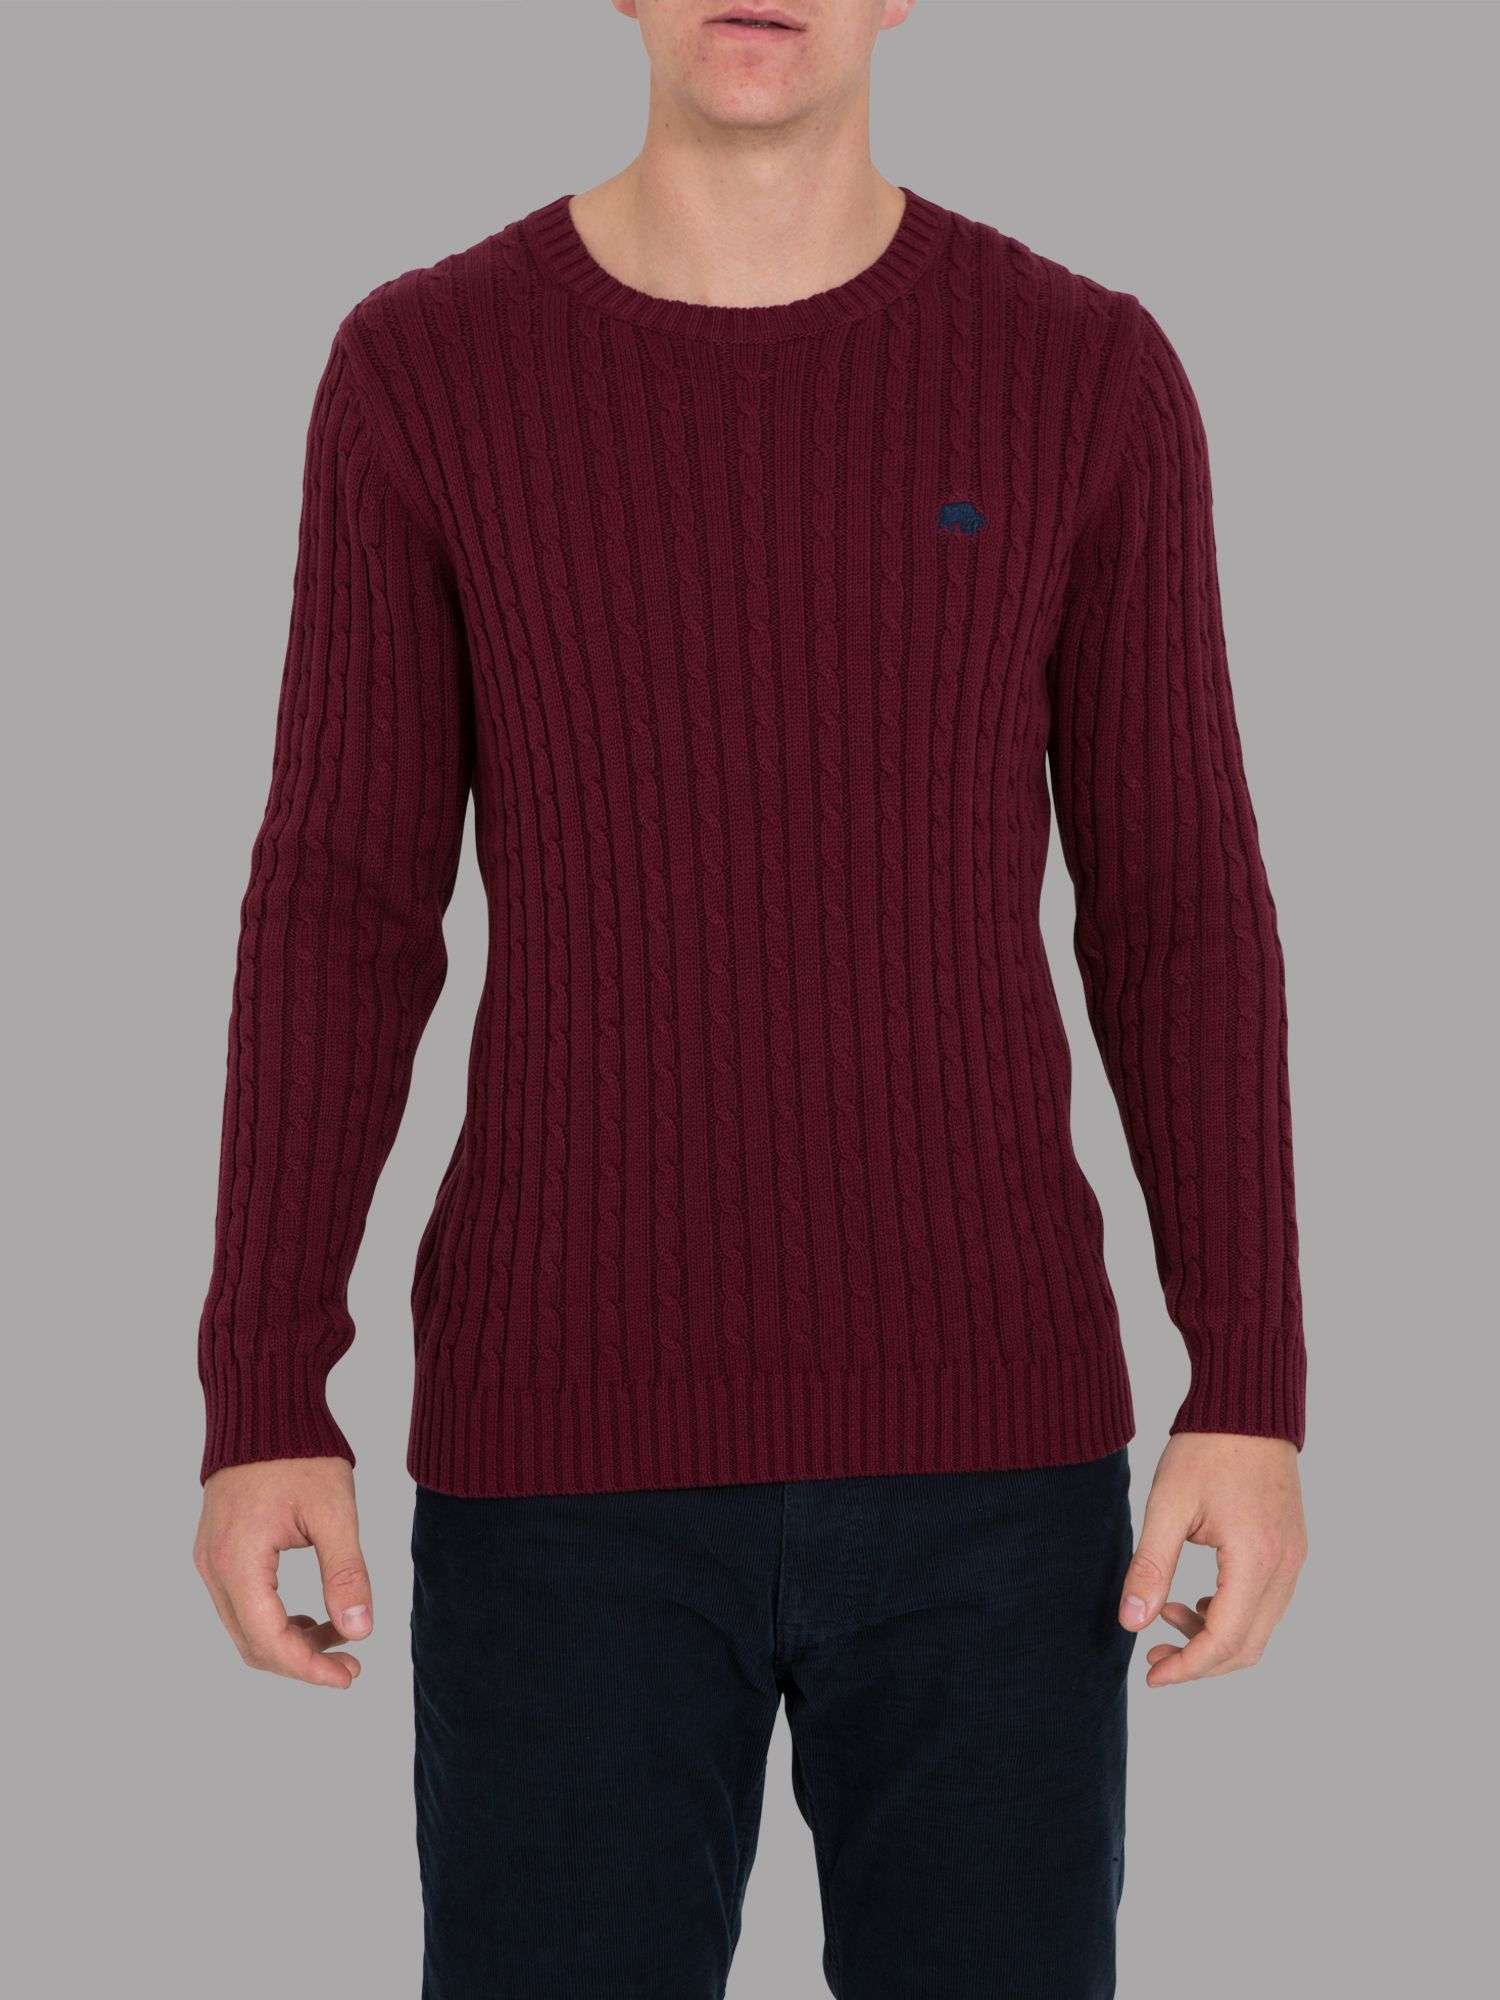 Big and tall cable knit sweater claret